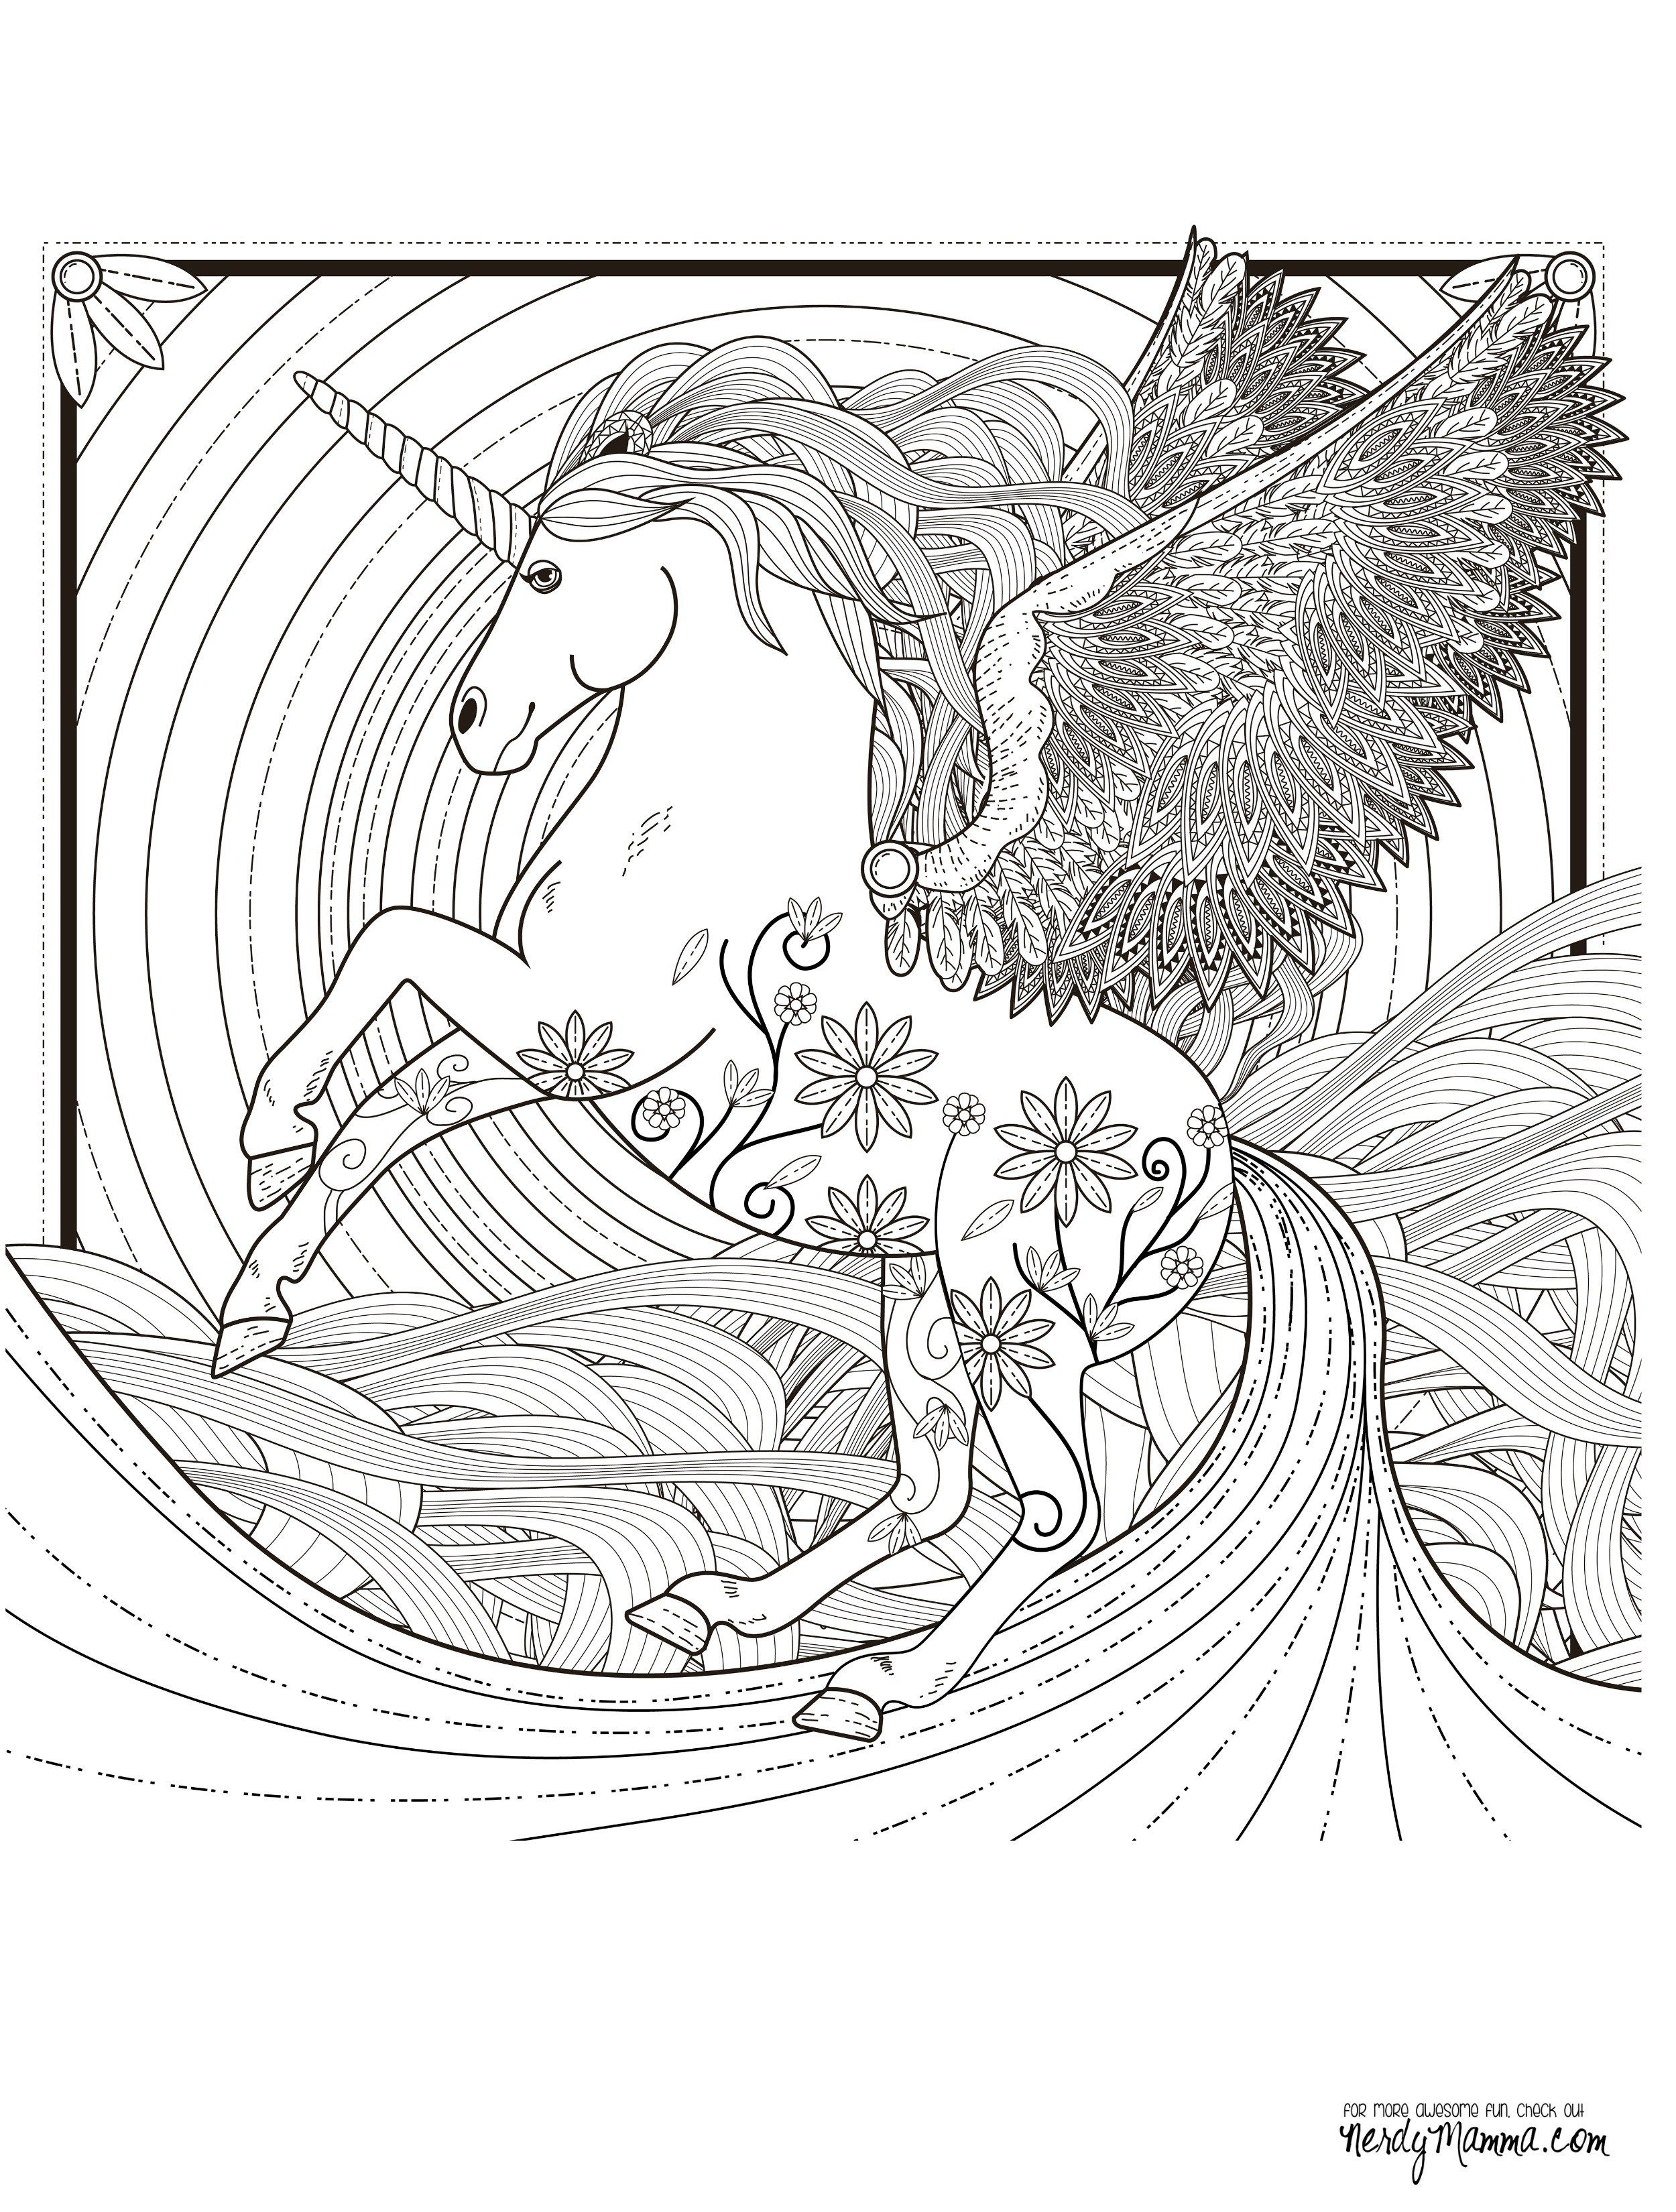 11 Free Printable Adult Coloring Pages Unicorn Coloring Pages